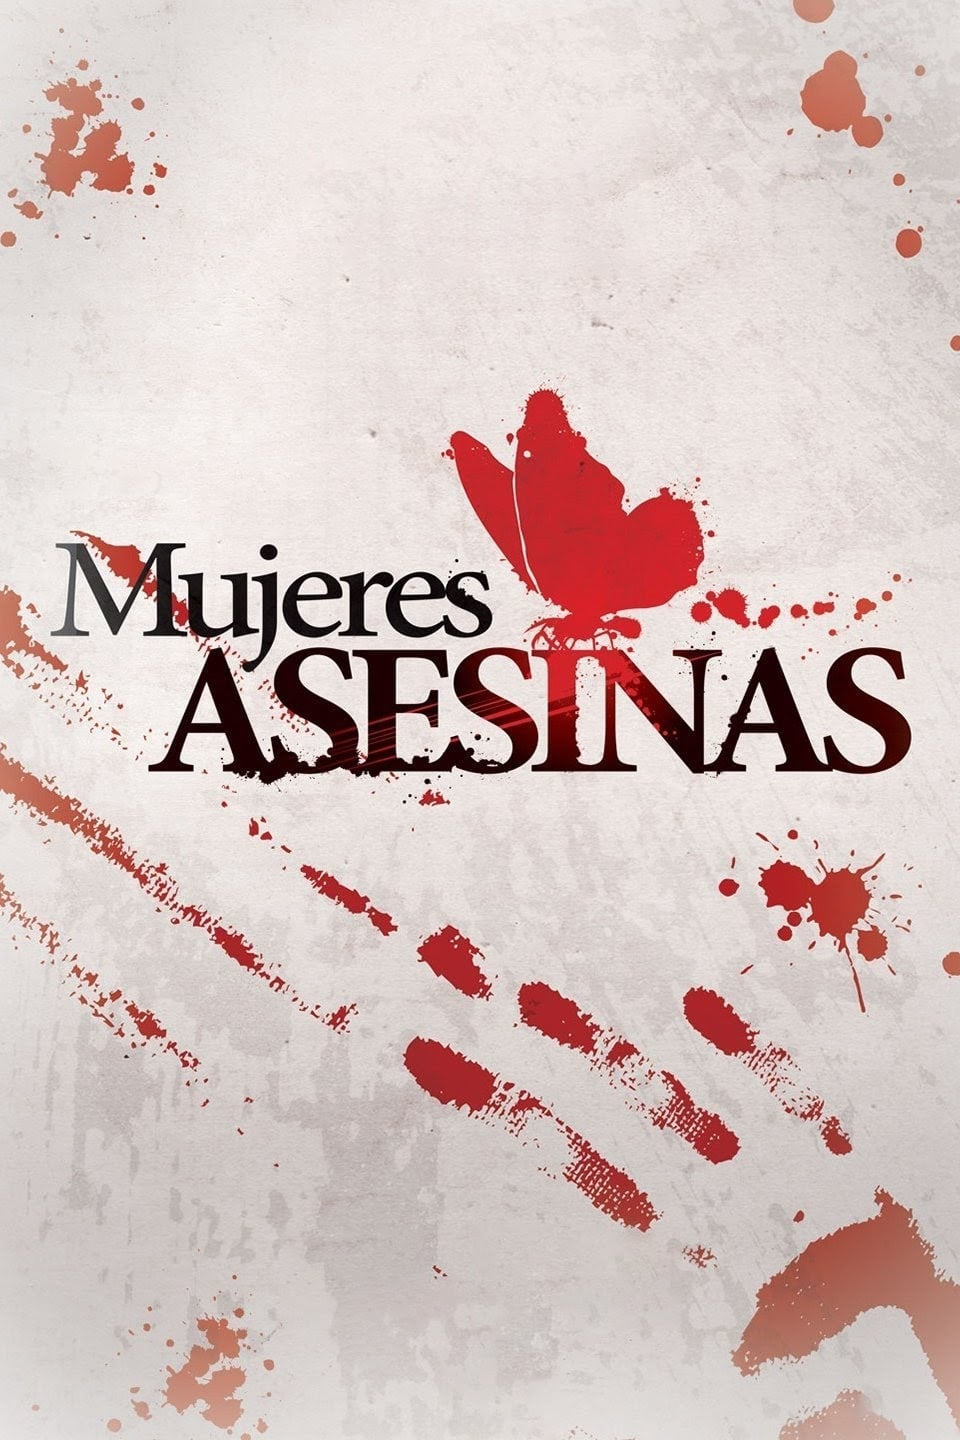 Mujeres Asesinas series tv complet